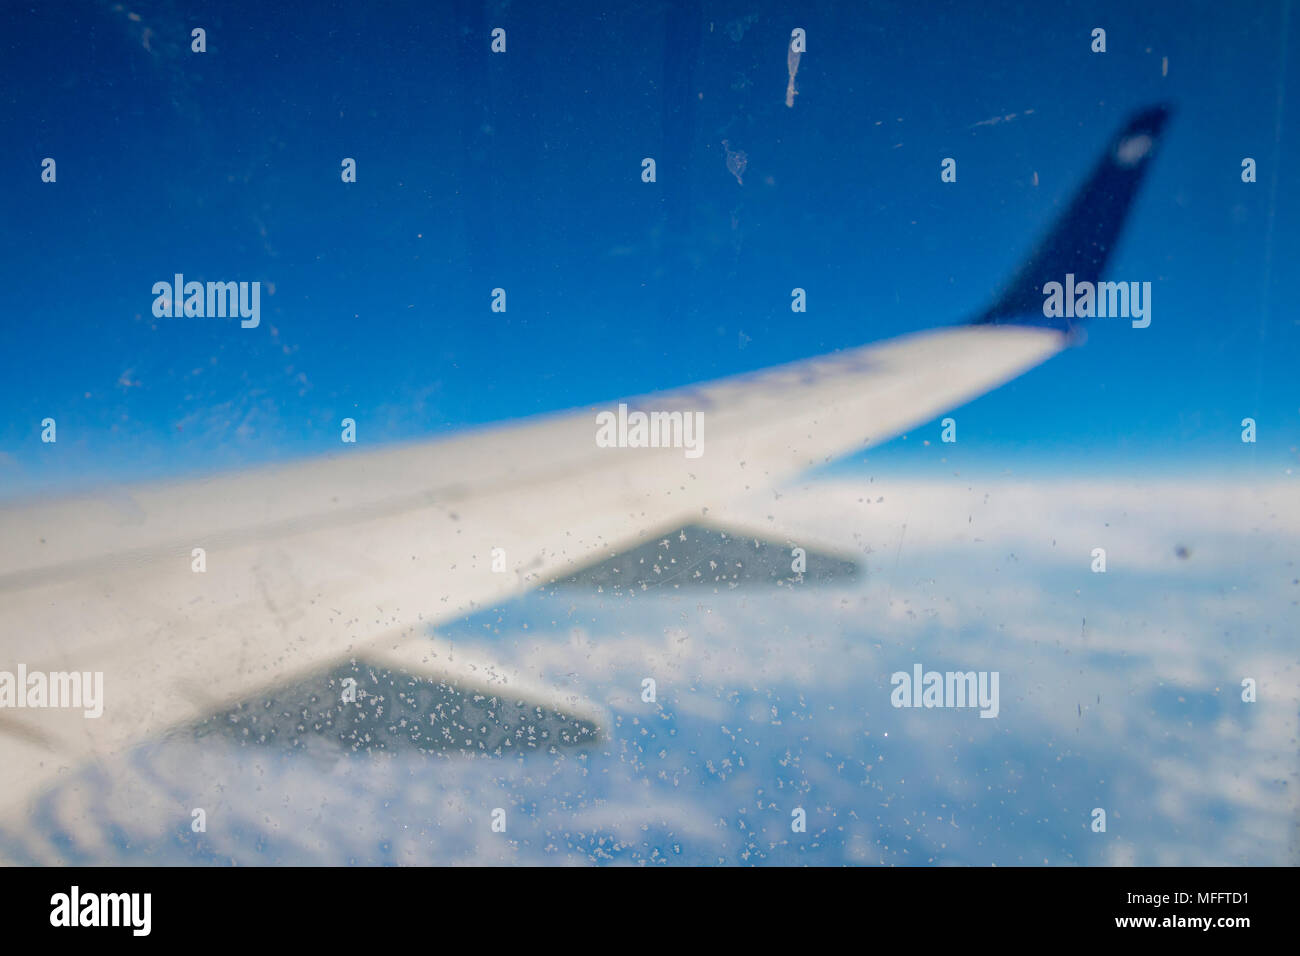 Frozen condensation of ice crystals on the window of an airplane with the wing in the back. - Stock Image